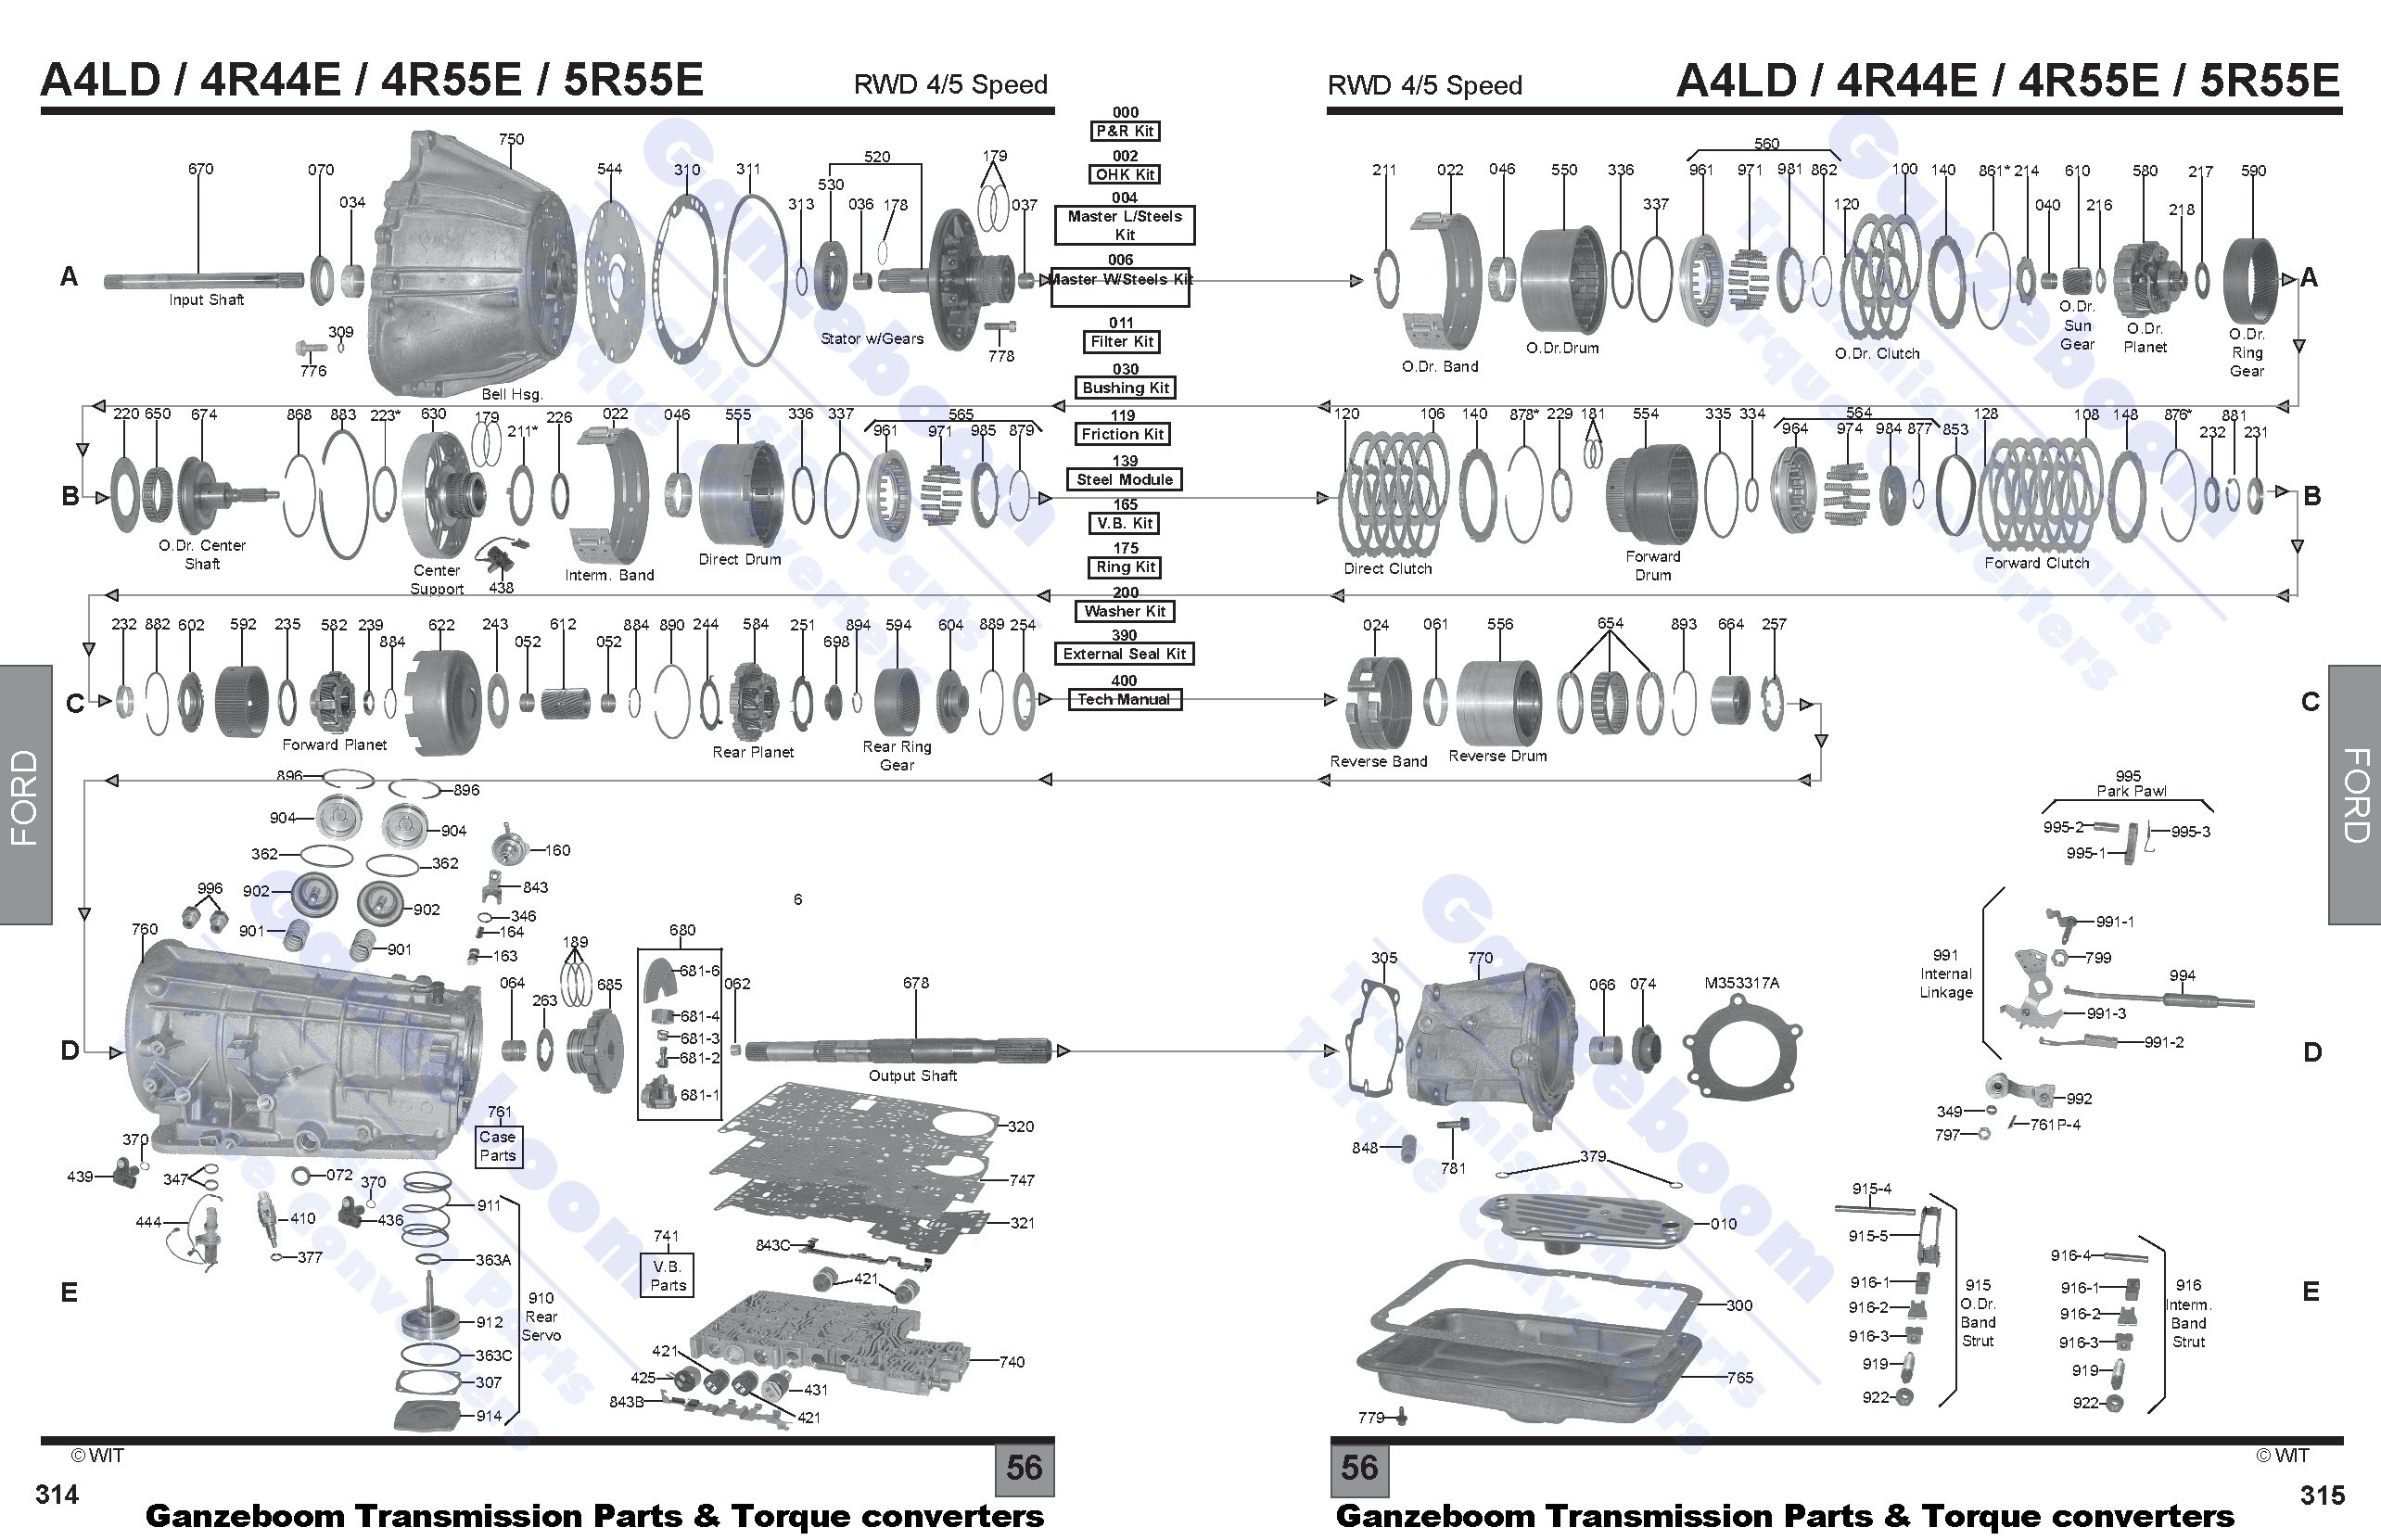 A4ld Automatic Transmission Diagrams - Radio Wiring Diagram • on e4od wiring schematic, a4ld diagram, jr403e wiring schematic, aode wiring schematic, 4l80e wiring schematic,